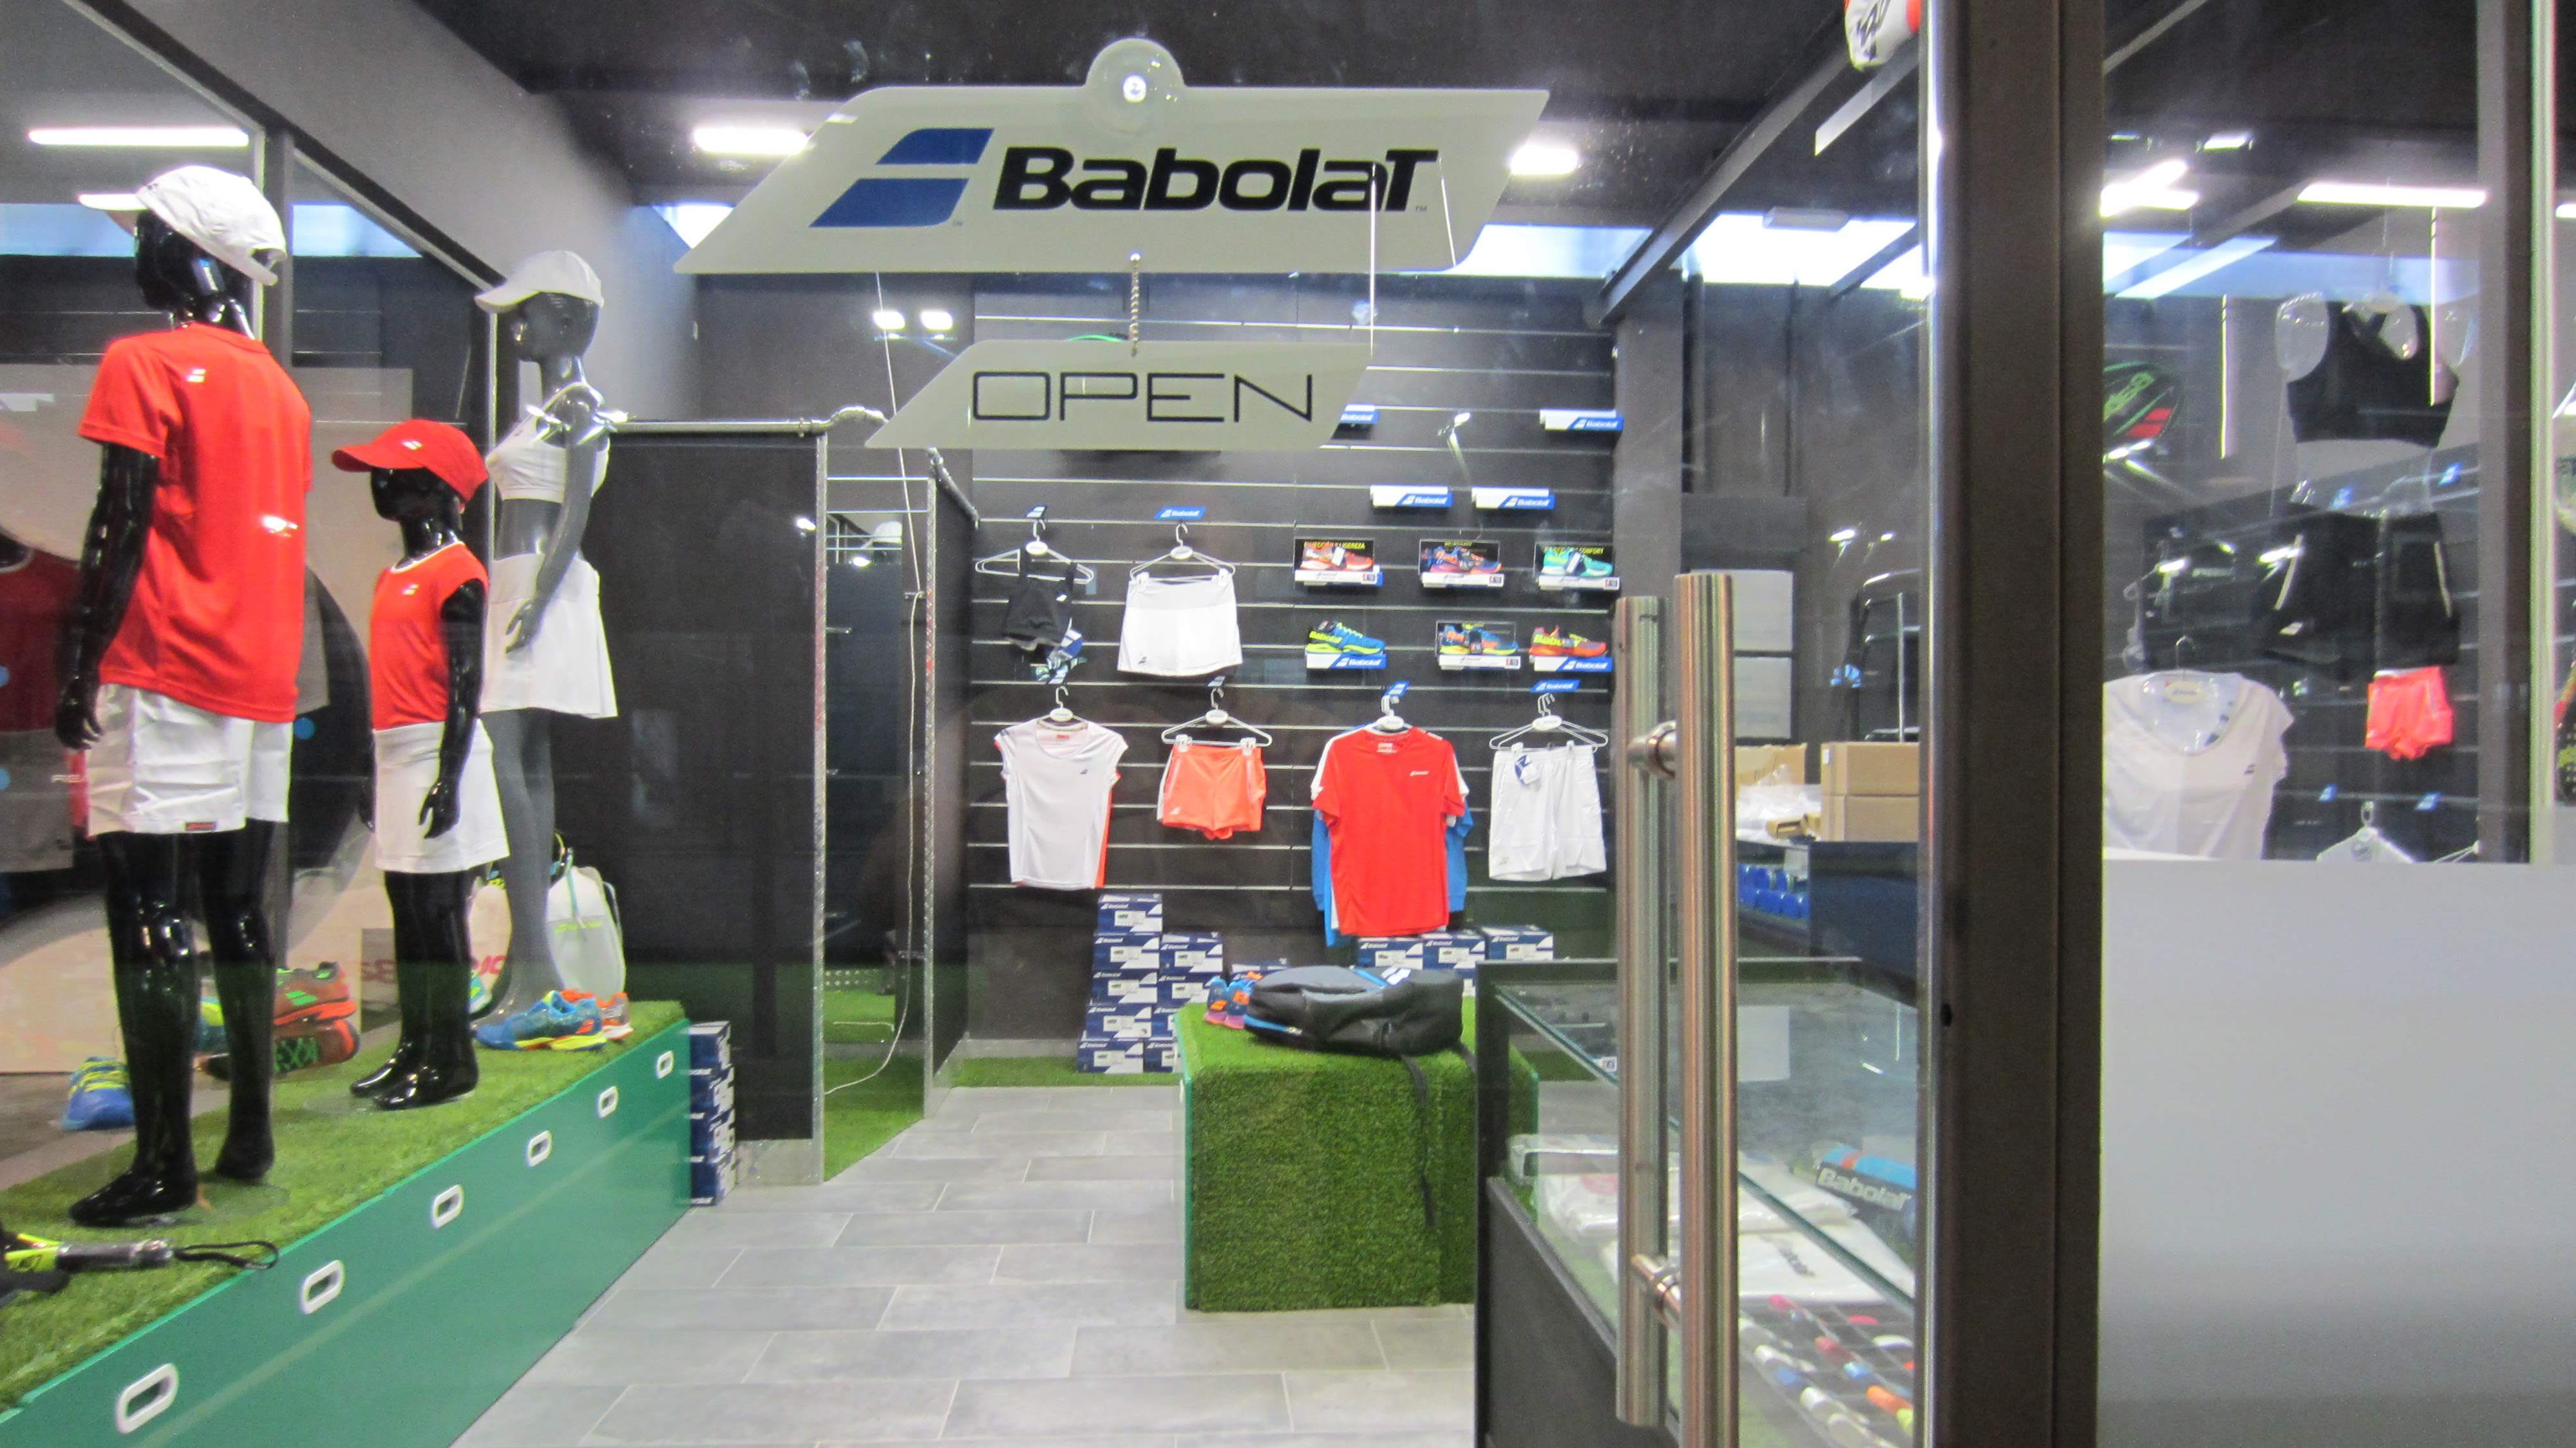 Exclusiva boutique Babolat